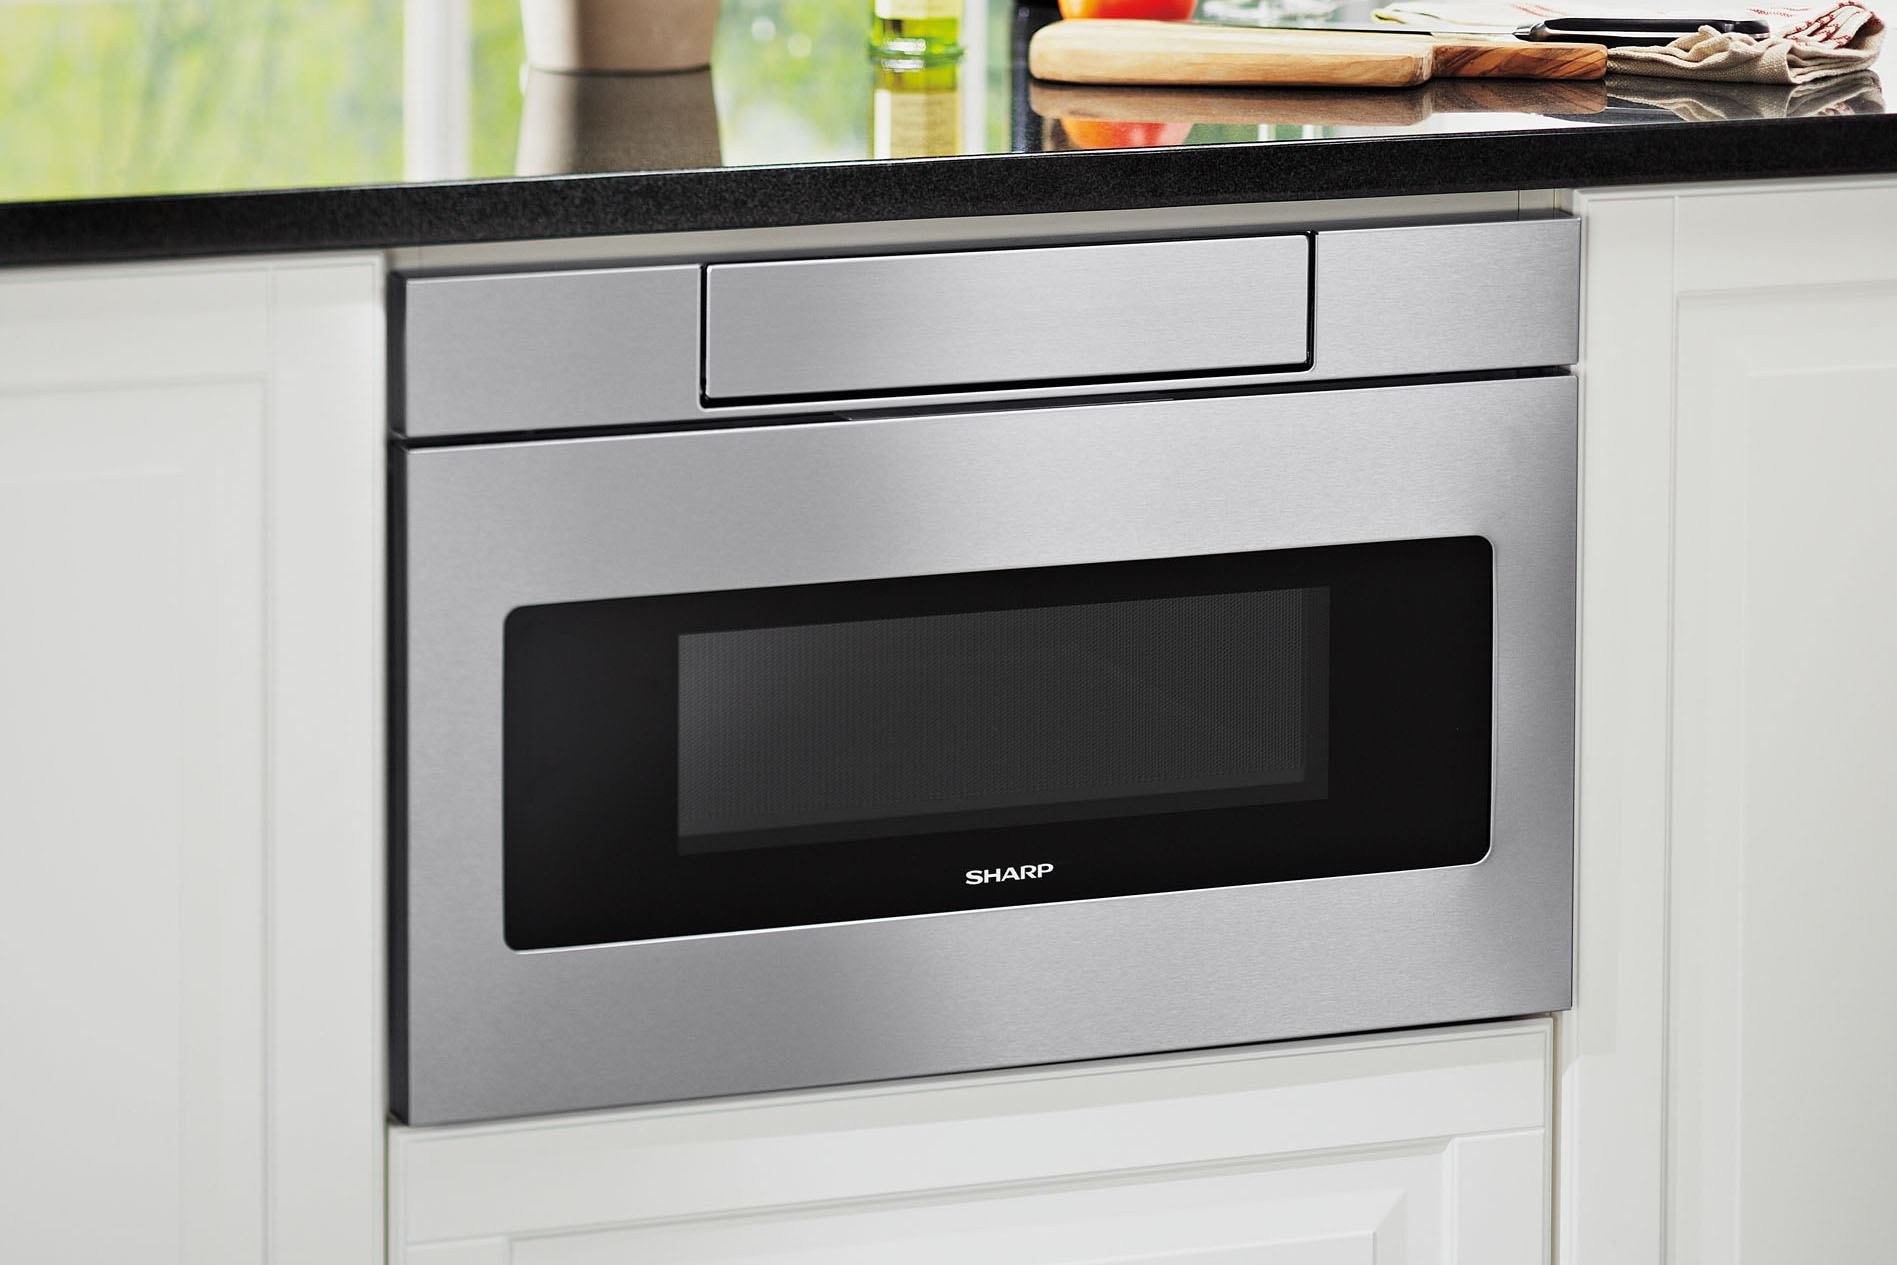 Sharp Updates Its Microwave Drawer for Universal Design